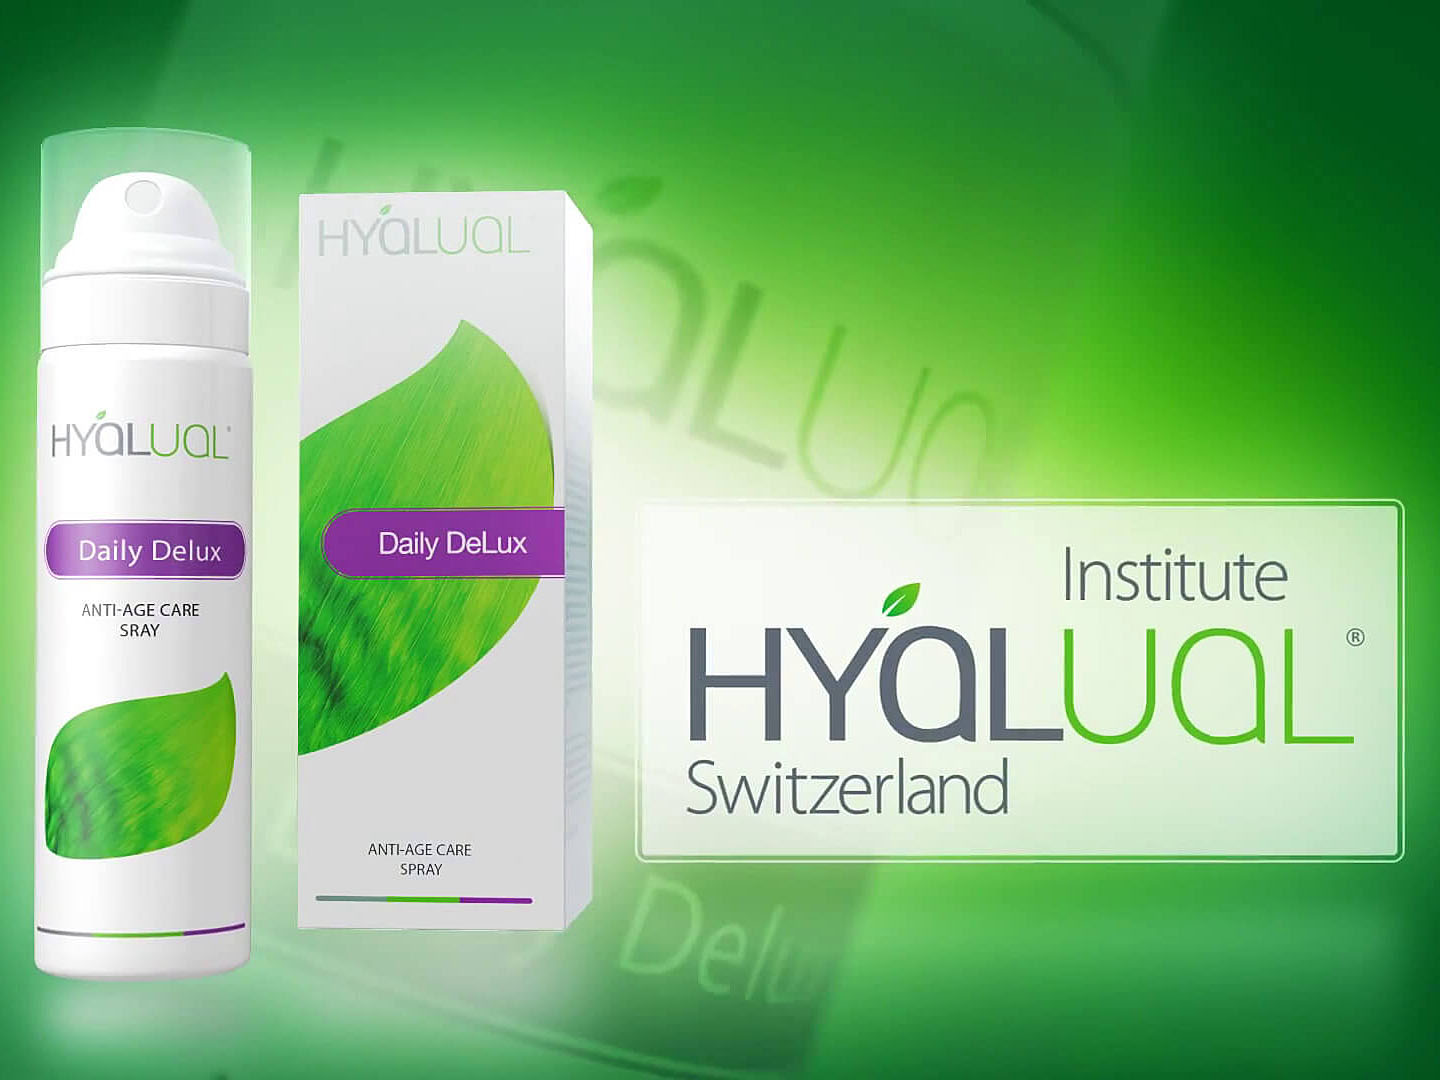 3D-Animated Explainer Presentation Video for Institute Hyalual Switzerland